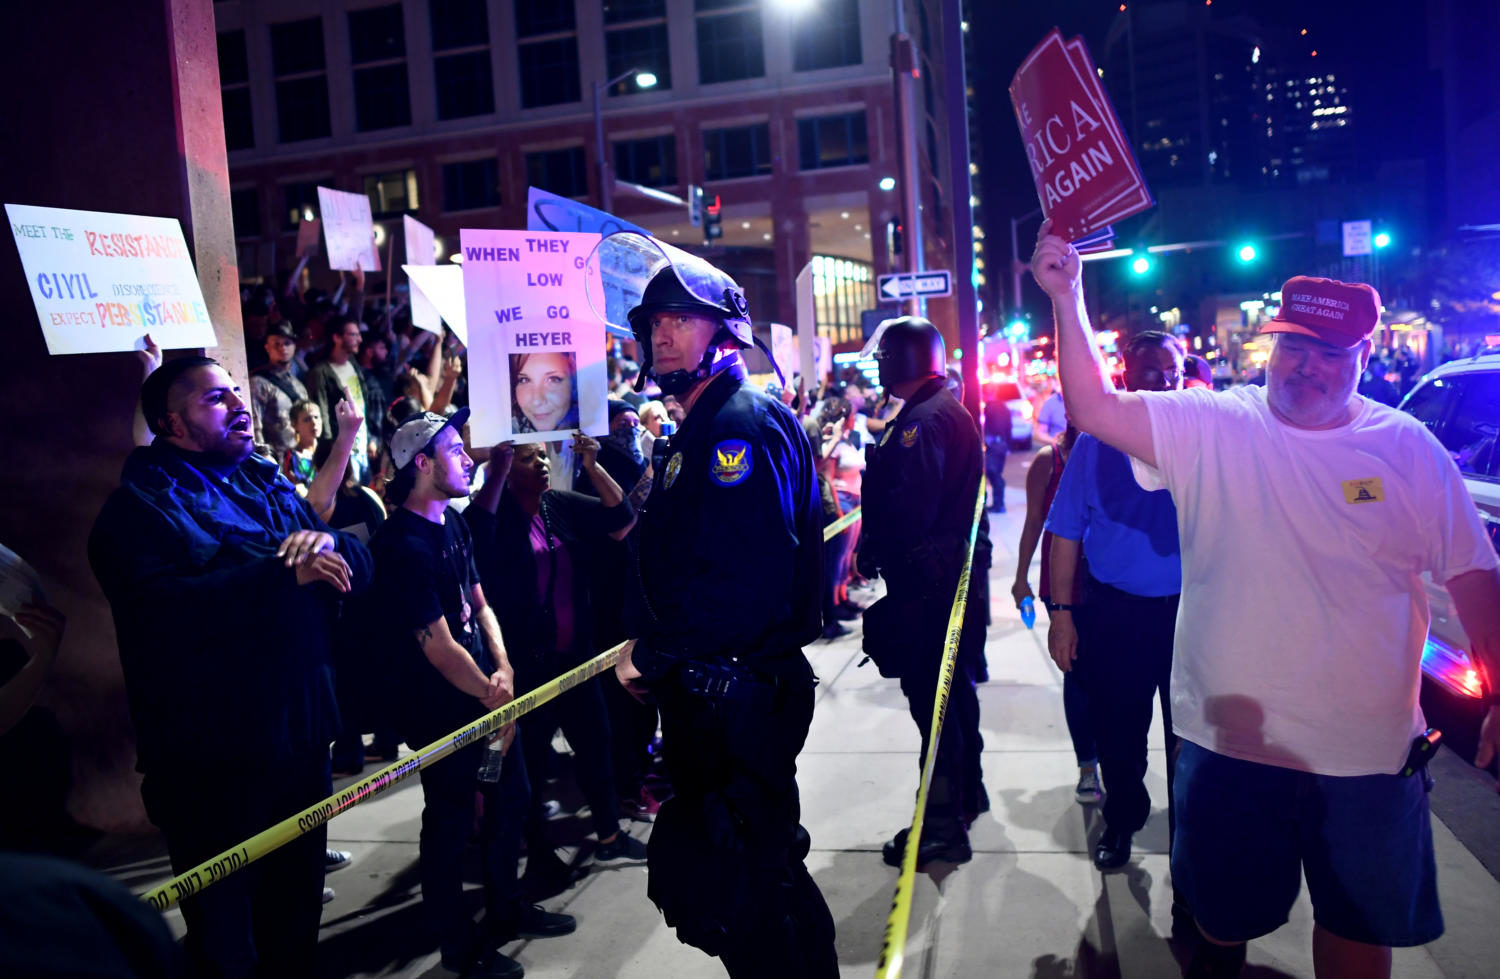 Trump+protestors%2C+left%2C+yell+as+a+Trump+supporter+leaves+the+convention+center+where+President+Donald+Trump+spoke+in+Phoenix+on+Tuesday%2C+Aug+22%2C+2017.+%28Wally+Skalij%2FLos+Angeles+Times%2FTNS%29